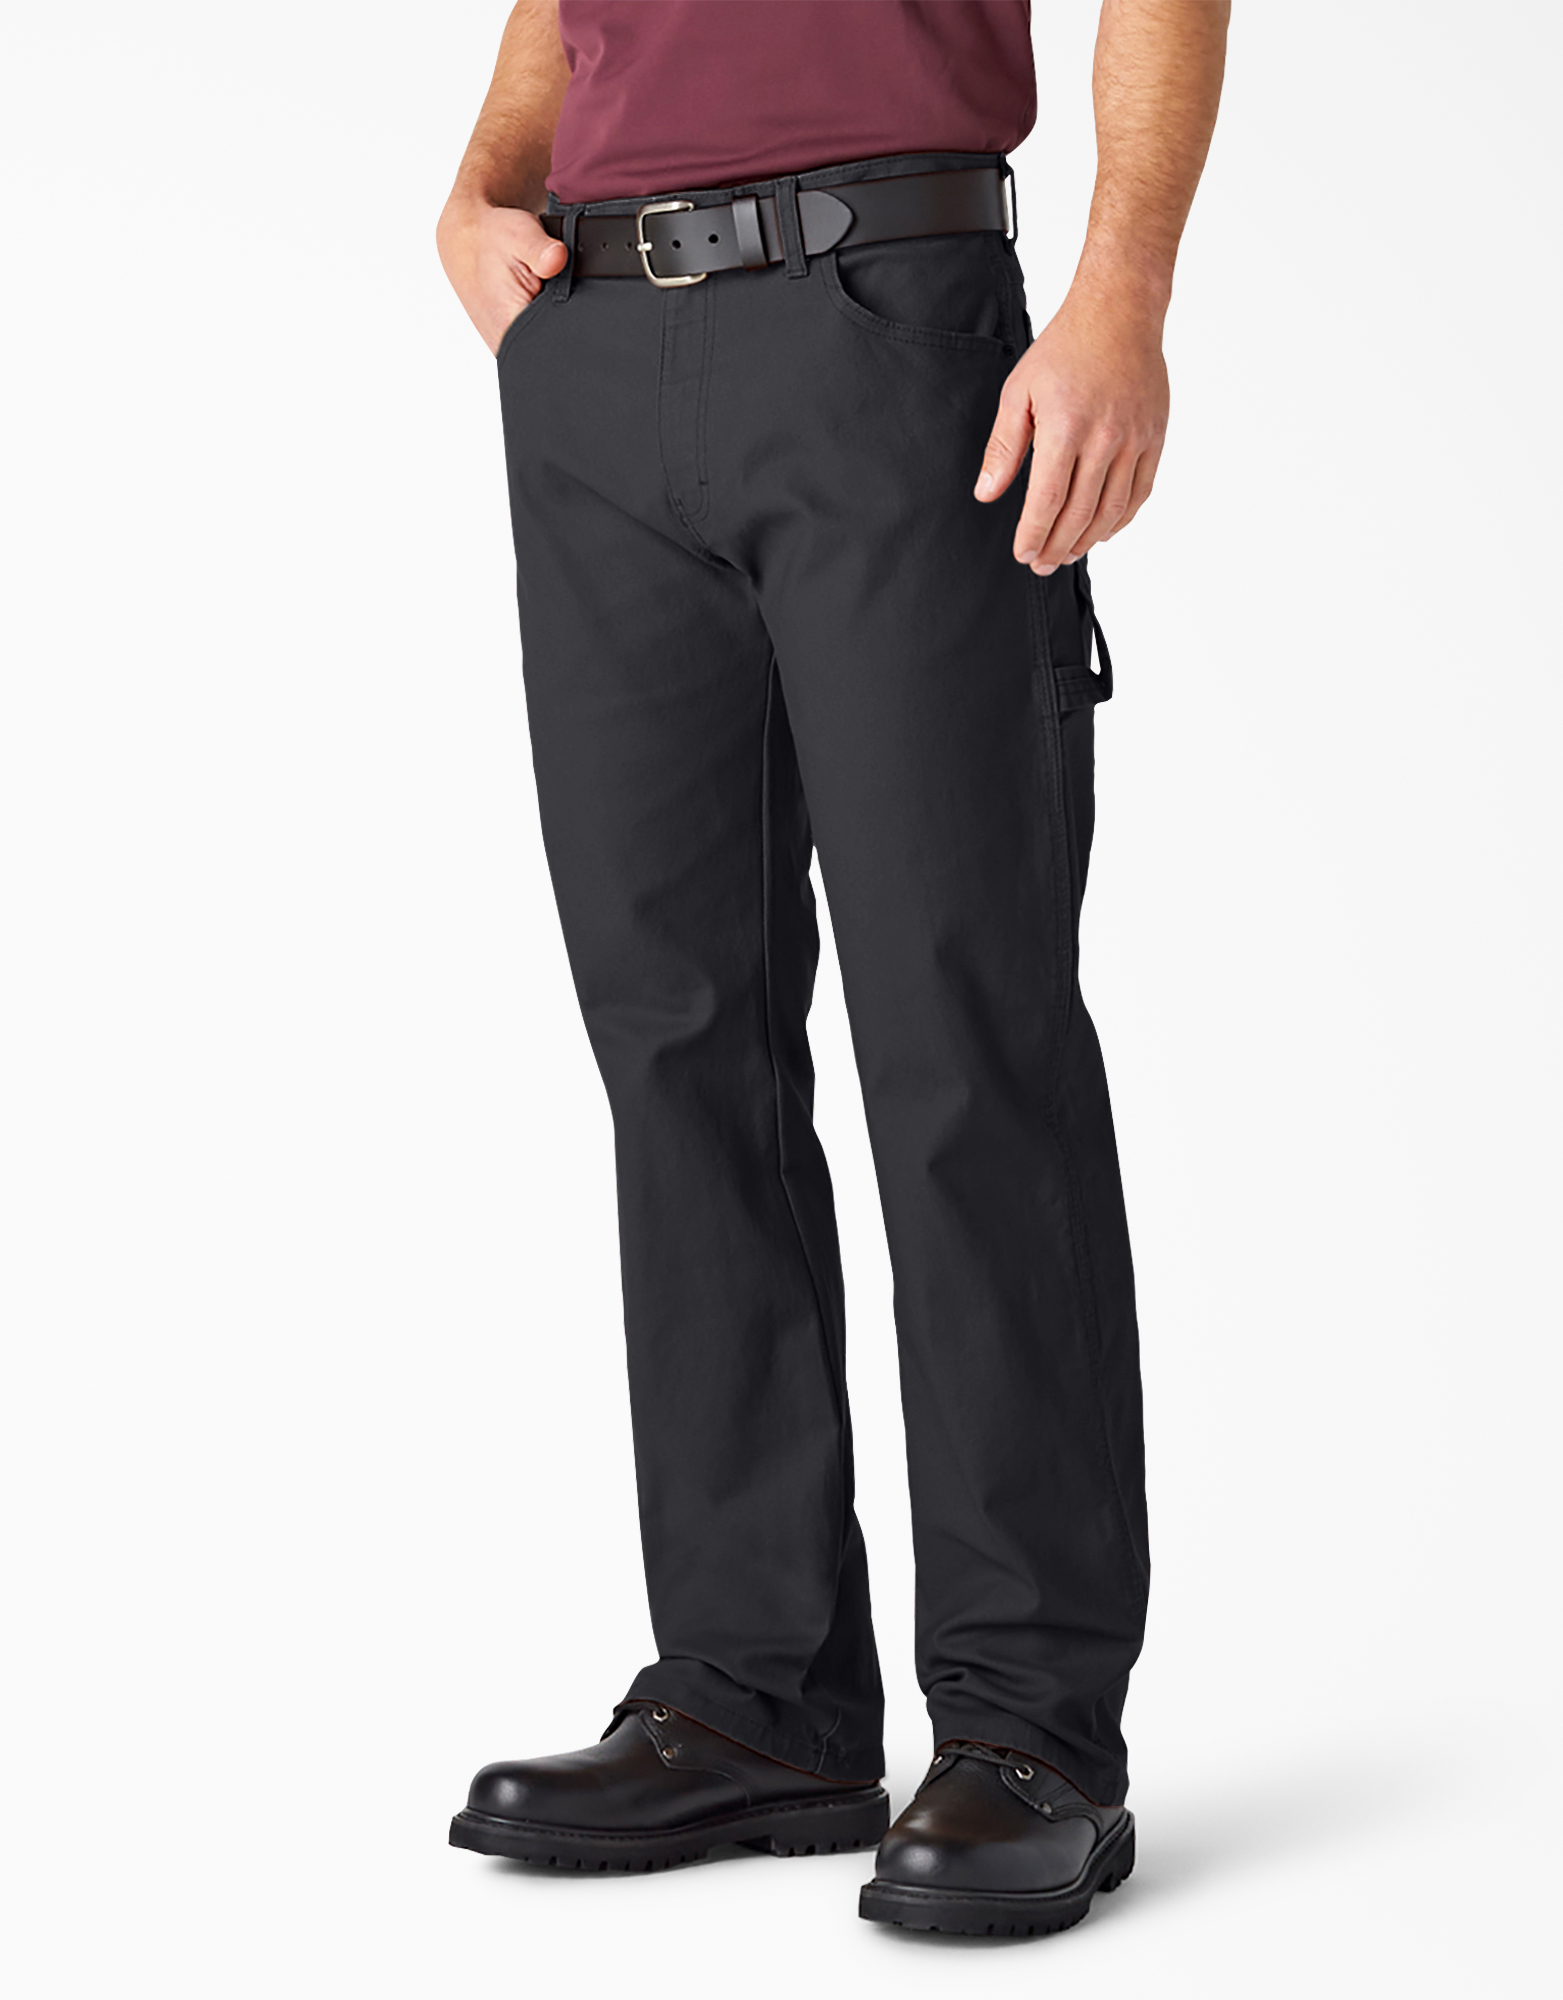 Relaxed Fit Straight Leg Carpenter Duck Jeans - Rinsed Black (RBK)